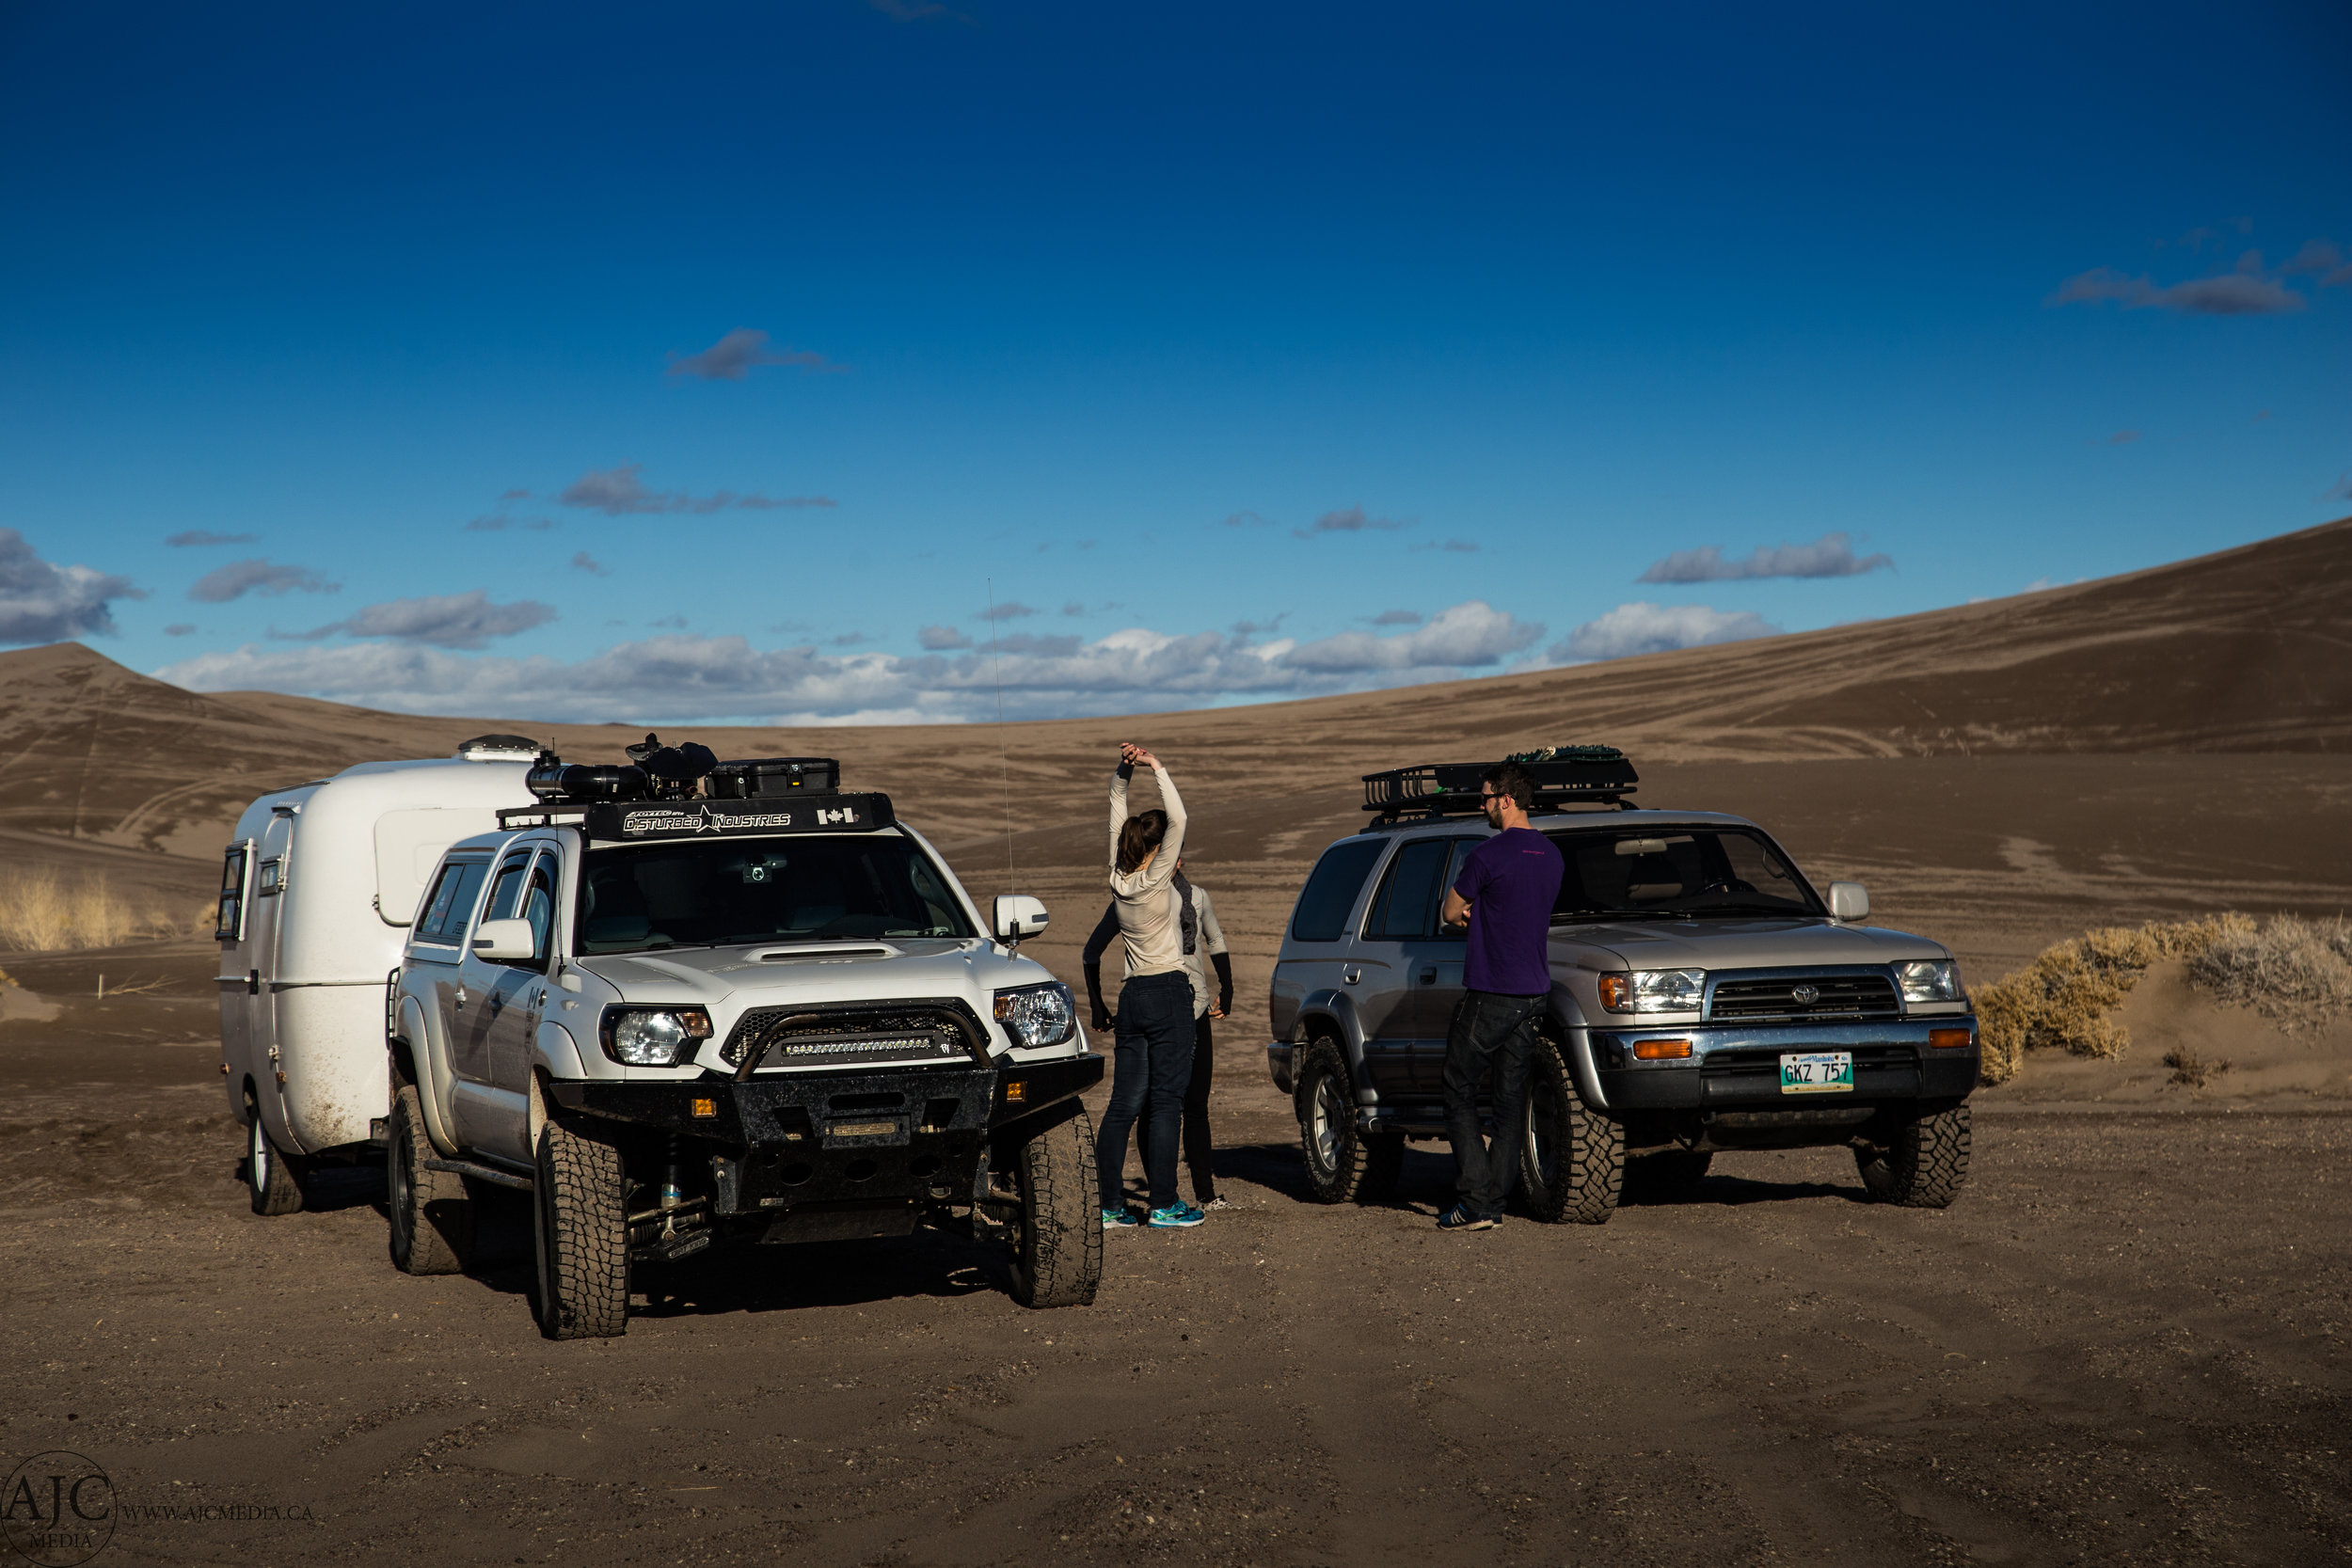 The trucks parked at the dunes. Shortly before we were both nearly stuck.